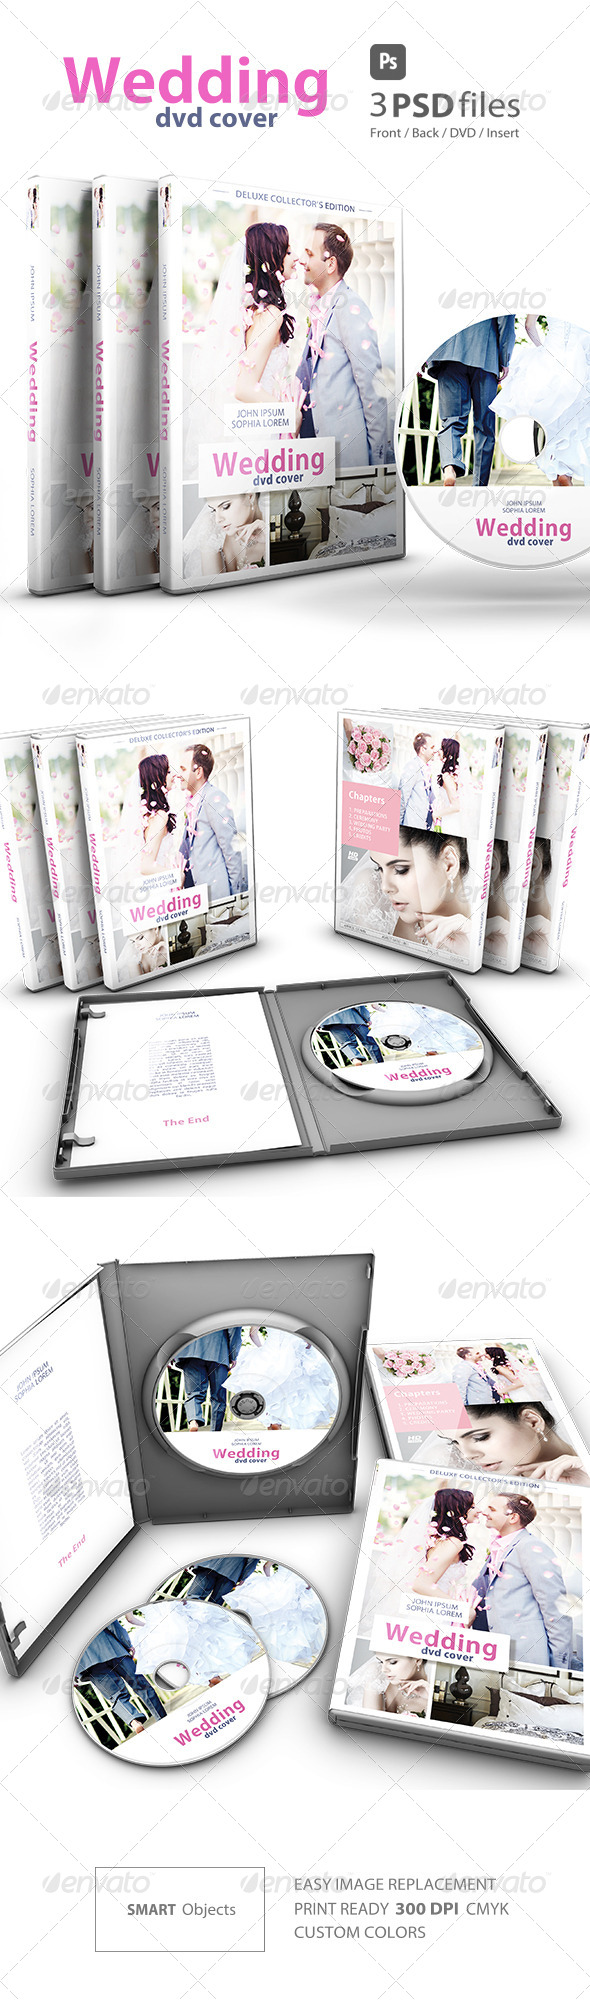 GraphicRiver Wedding DVD Cover vol.2 7517563